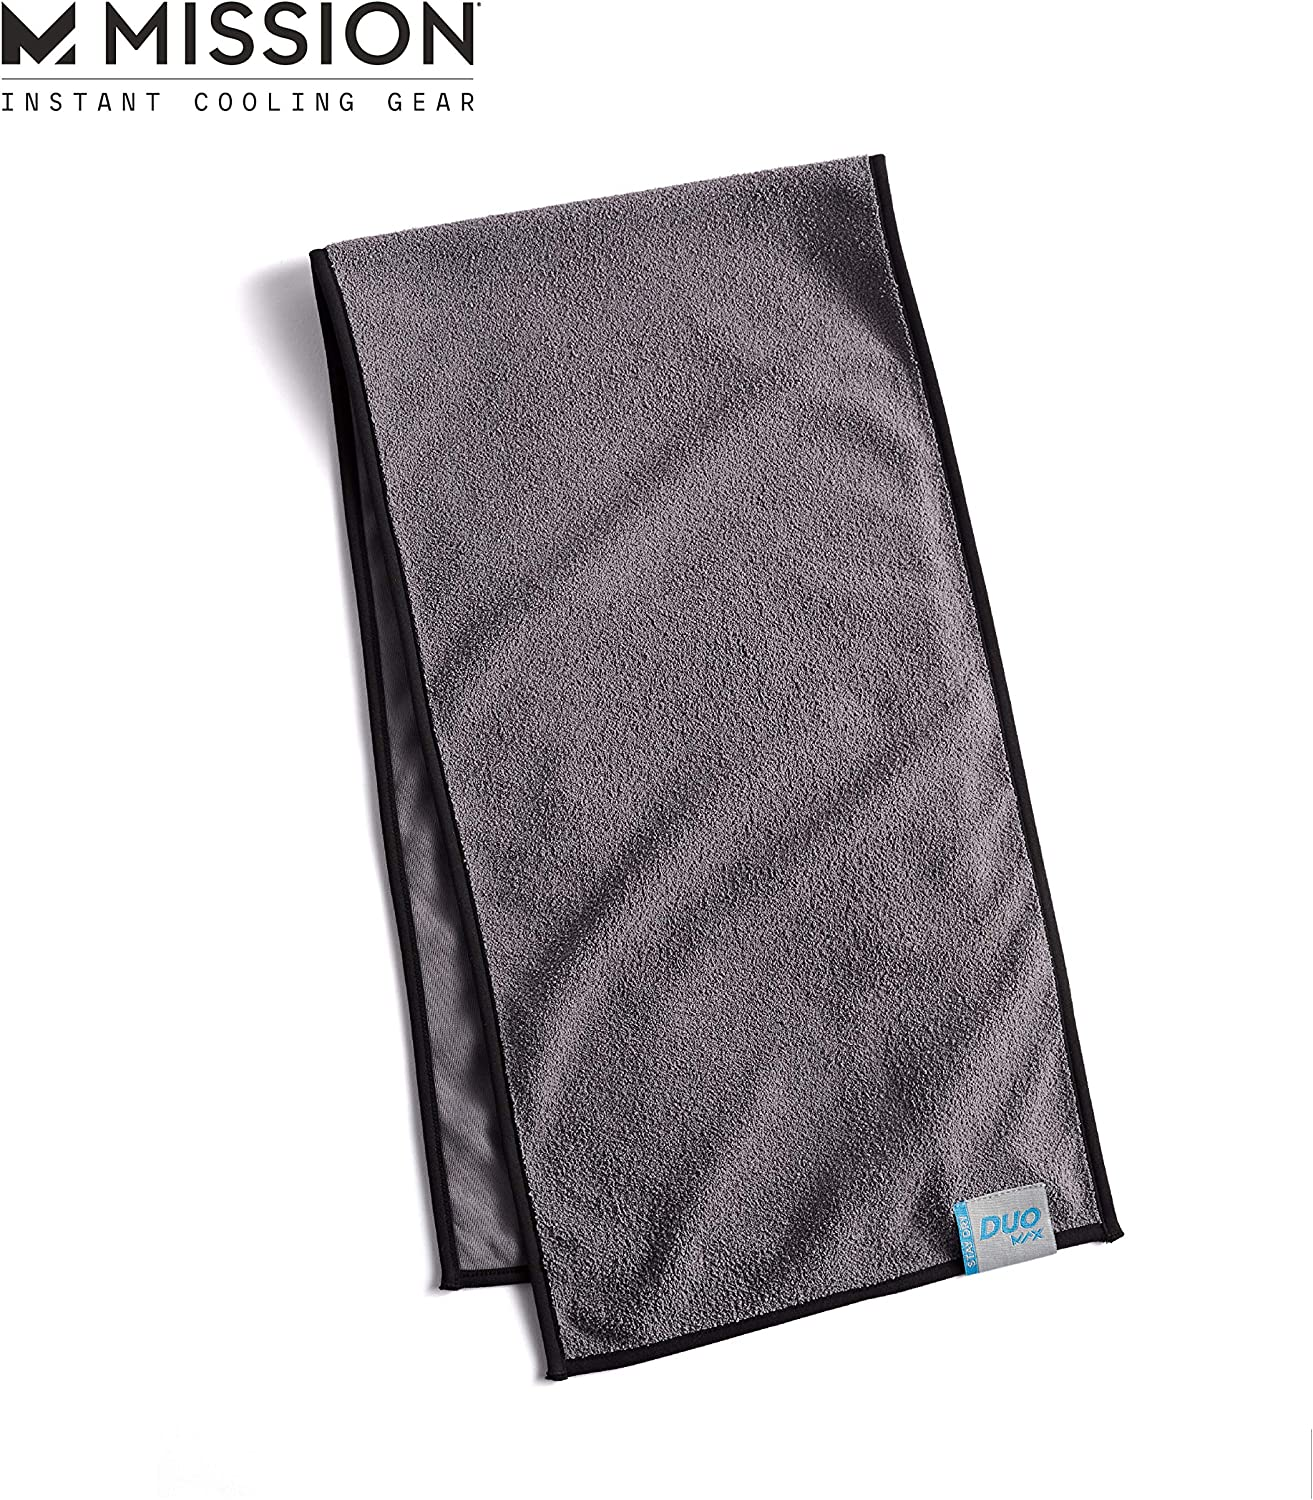 MISSION Cooling DuoMax Towel Dual Sided Towel One Terry Side to Dry You, One Evaporative Cooling Side to Cool You, Cools Instantly When Wet, UPF 50 Sun Protection, Yoga, Gym, Neck, Workout- Charcoal